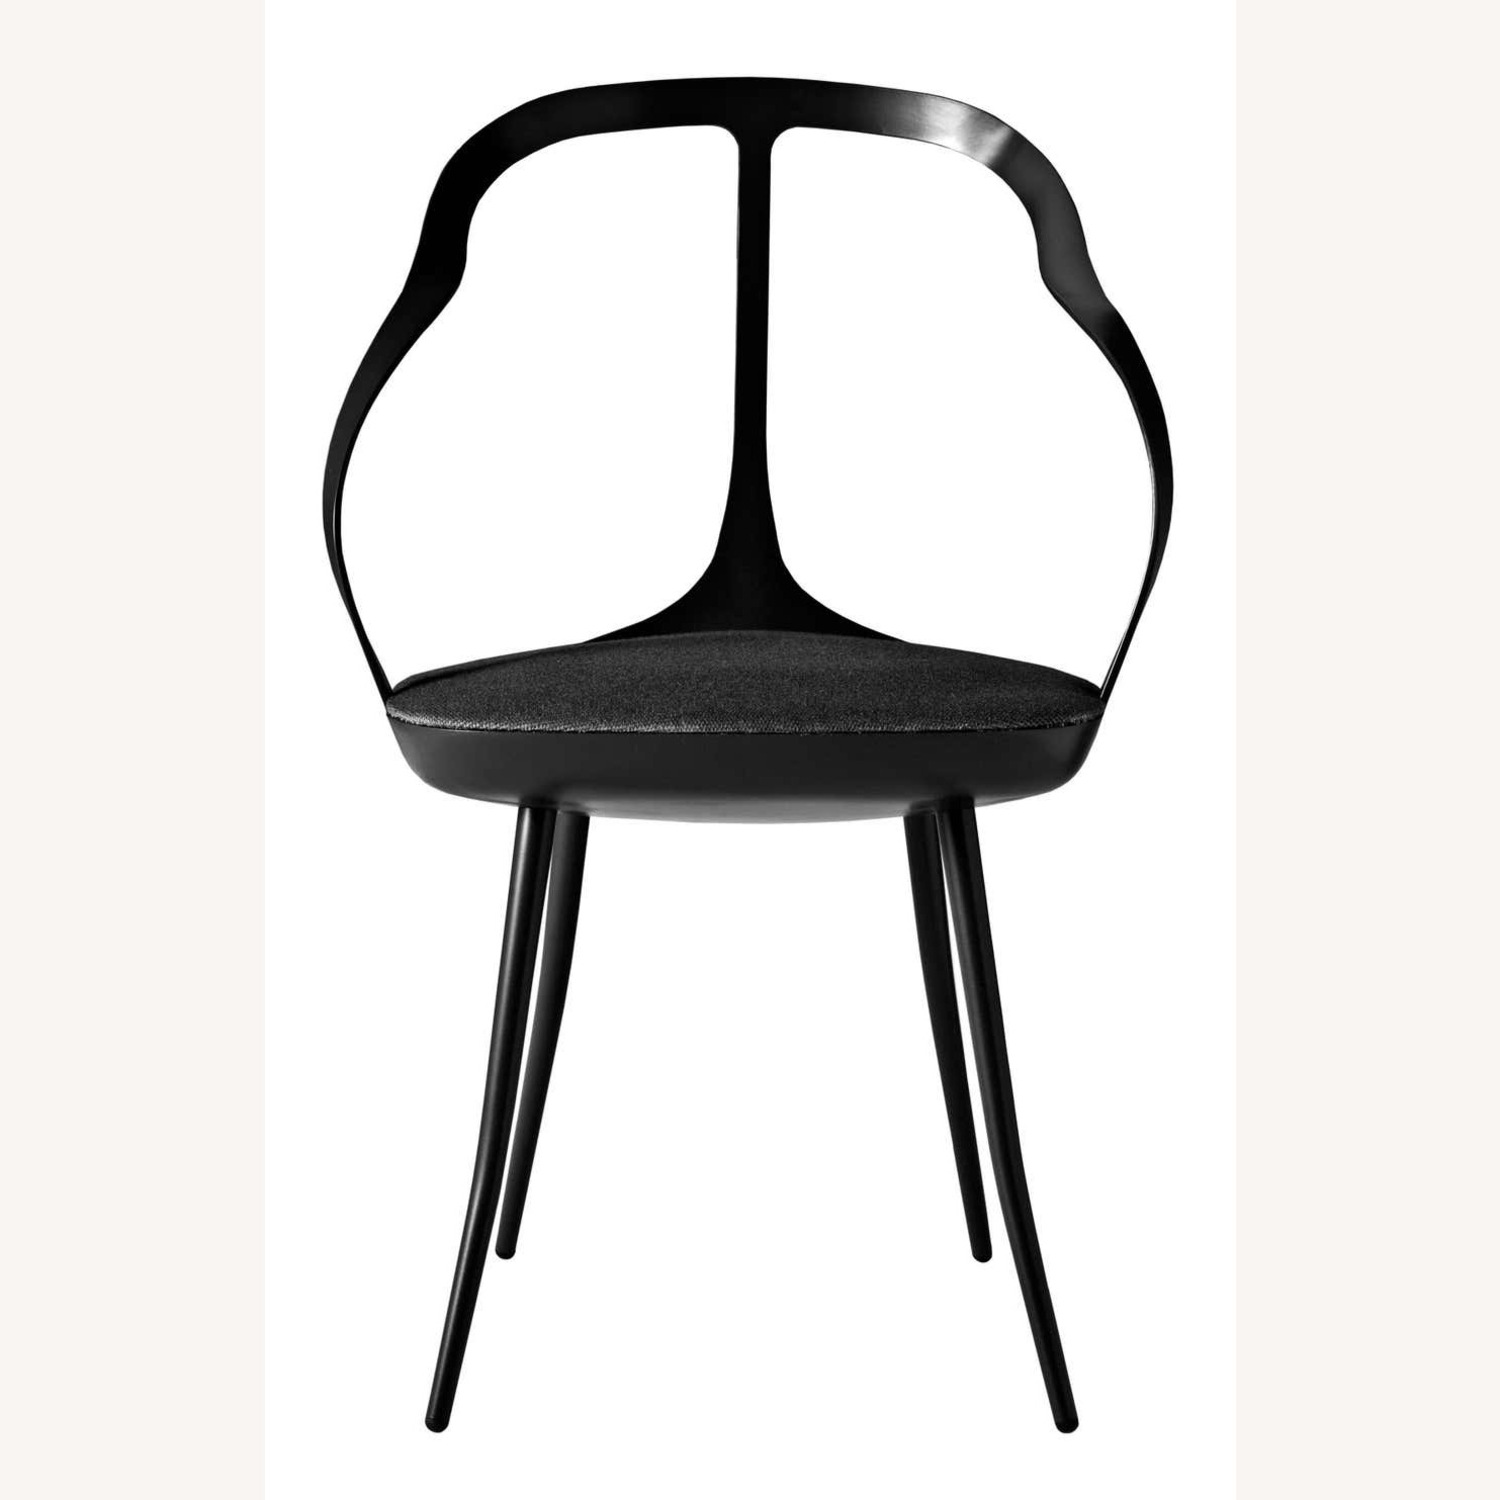 Italian design chairs by Driade - image-2